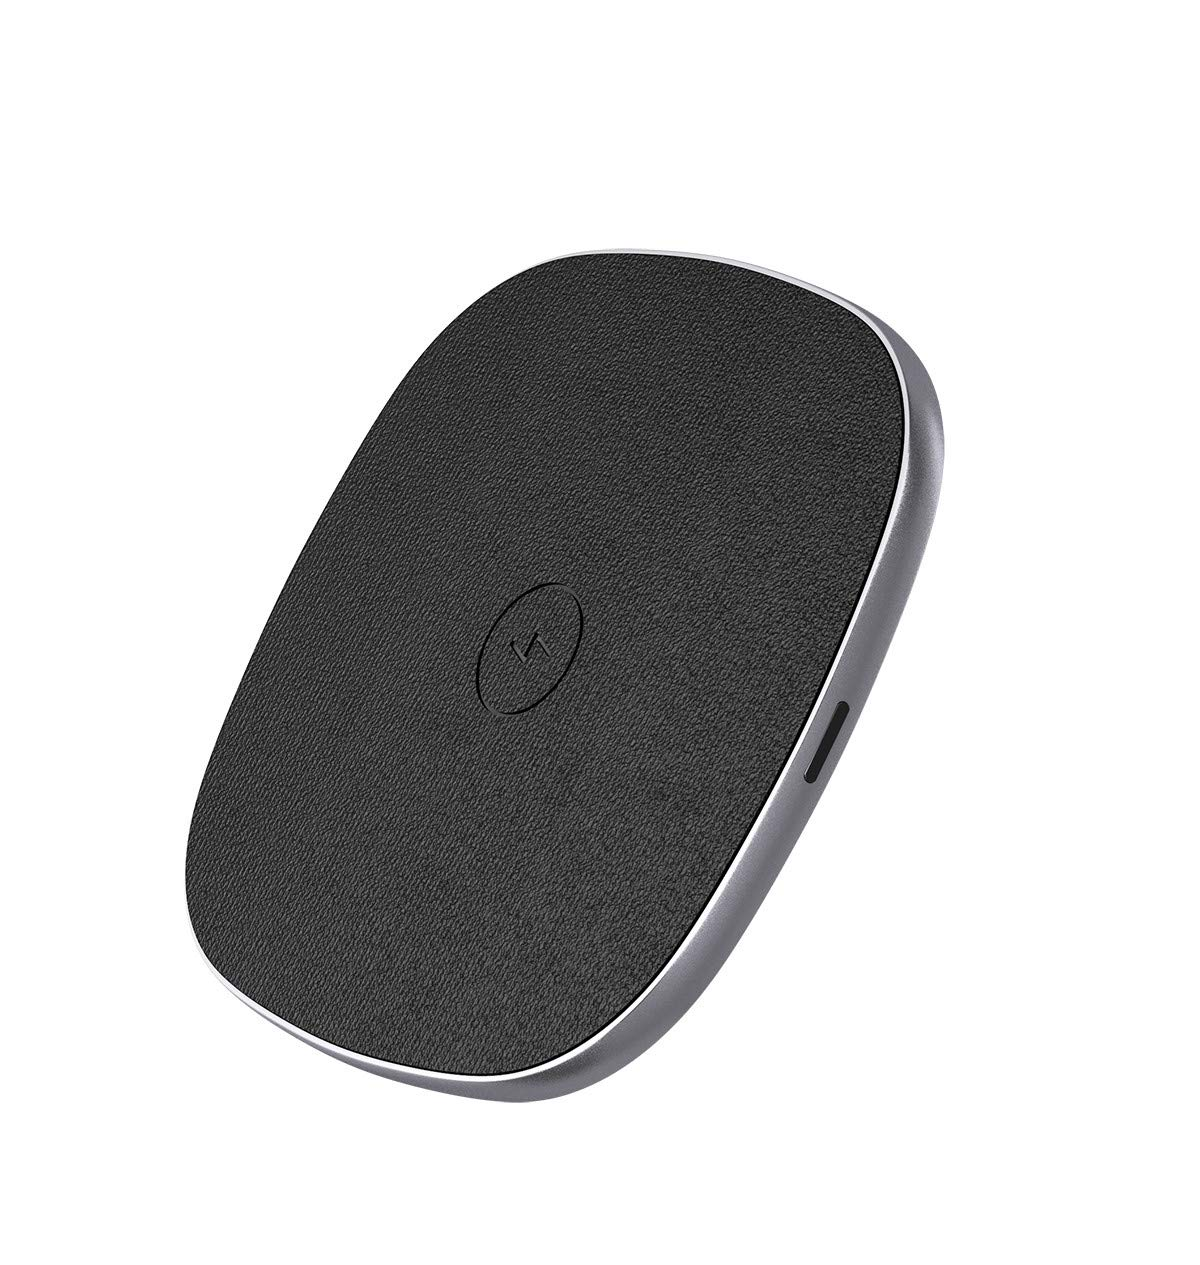 Poweradd Fast Wireless Charger, [10W/7.5W] Fast Charging Pad Compatible with iPhone XS/XS Max/XR/X/iPhone 8/8 Plus, Samsung Galaxy S9/S9+/S8/S8+/S7 and all Qi-enabled Devices